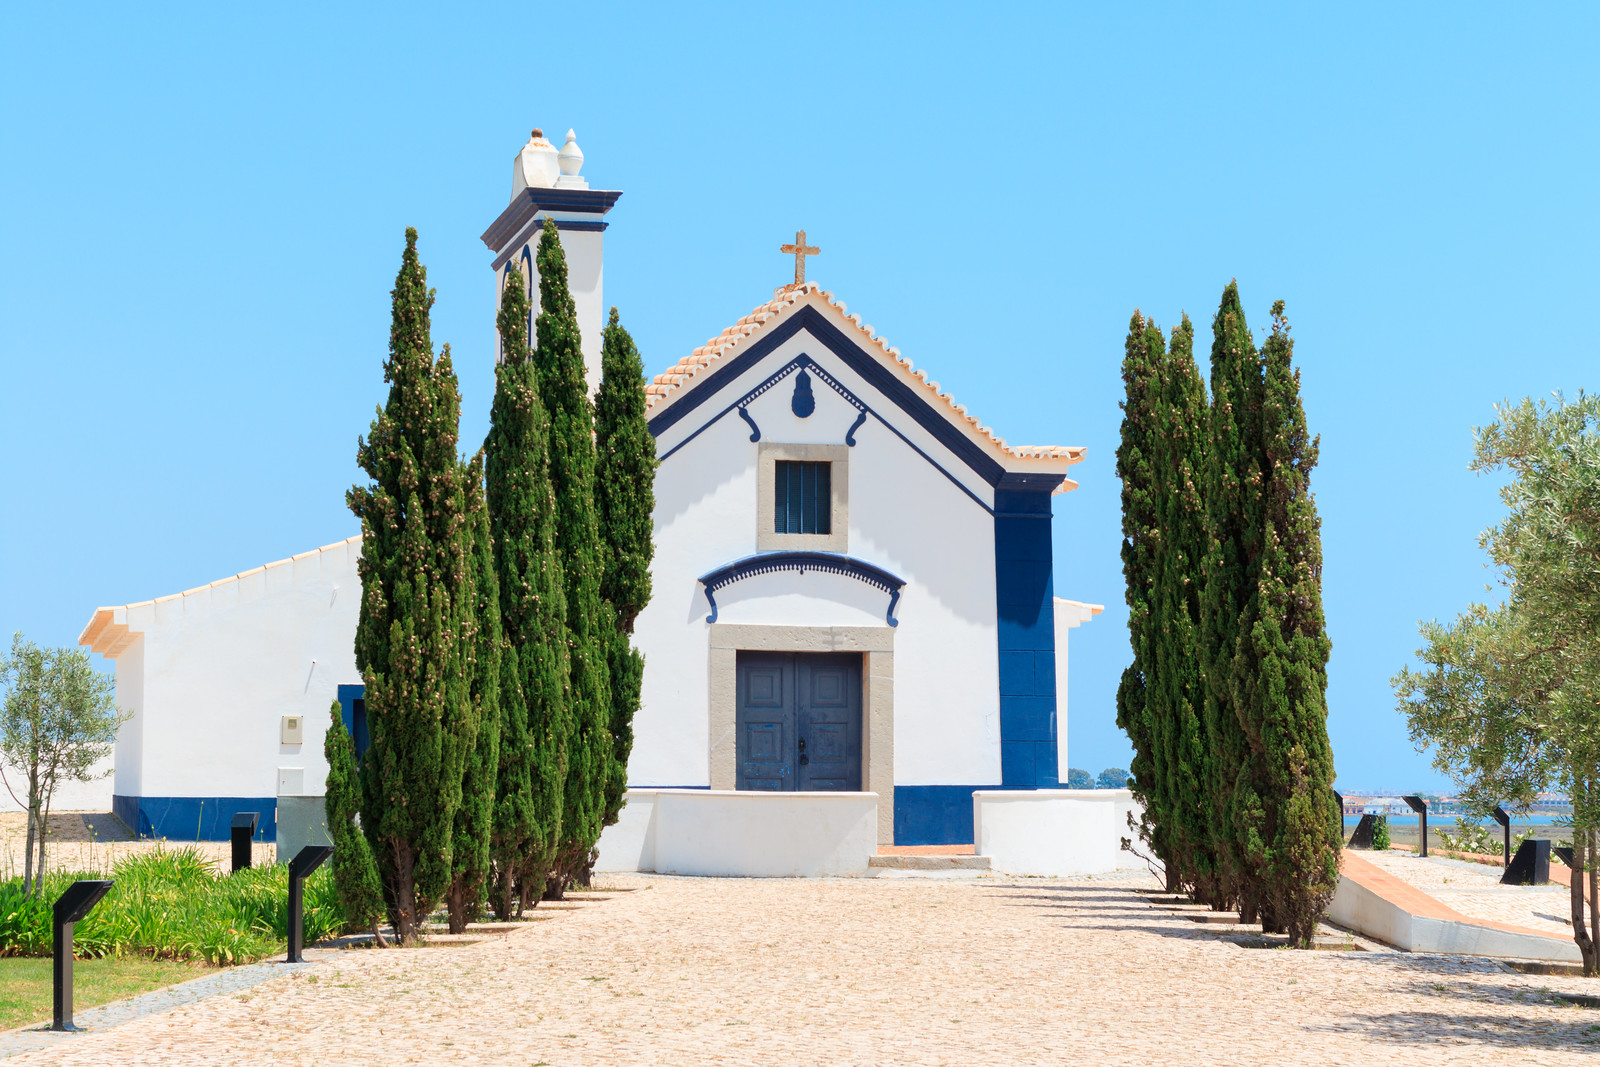 Chapel at Castro Marim, Portugal